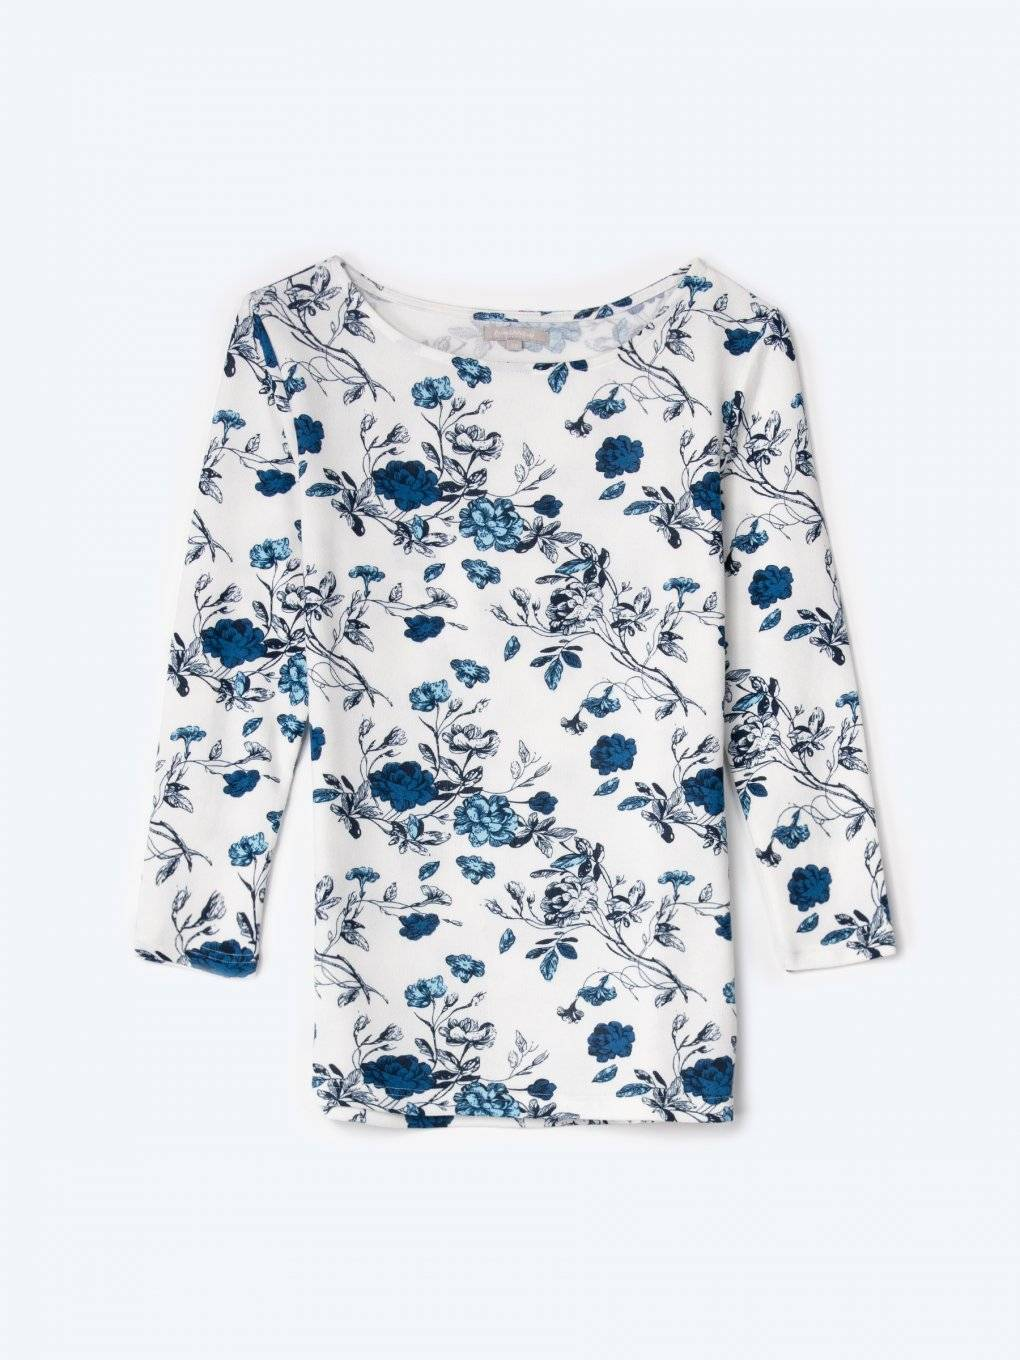 Floral print 3/4 sleeve top